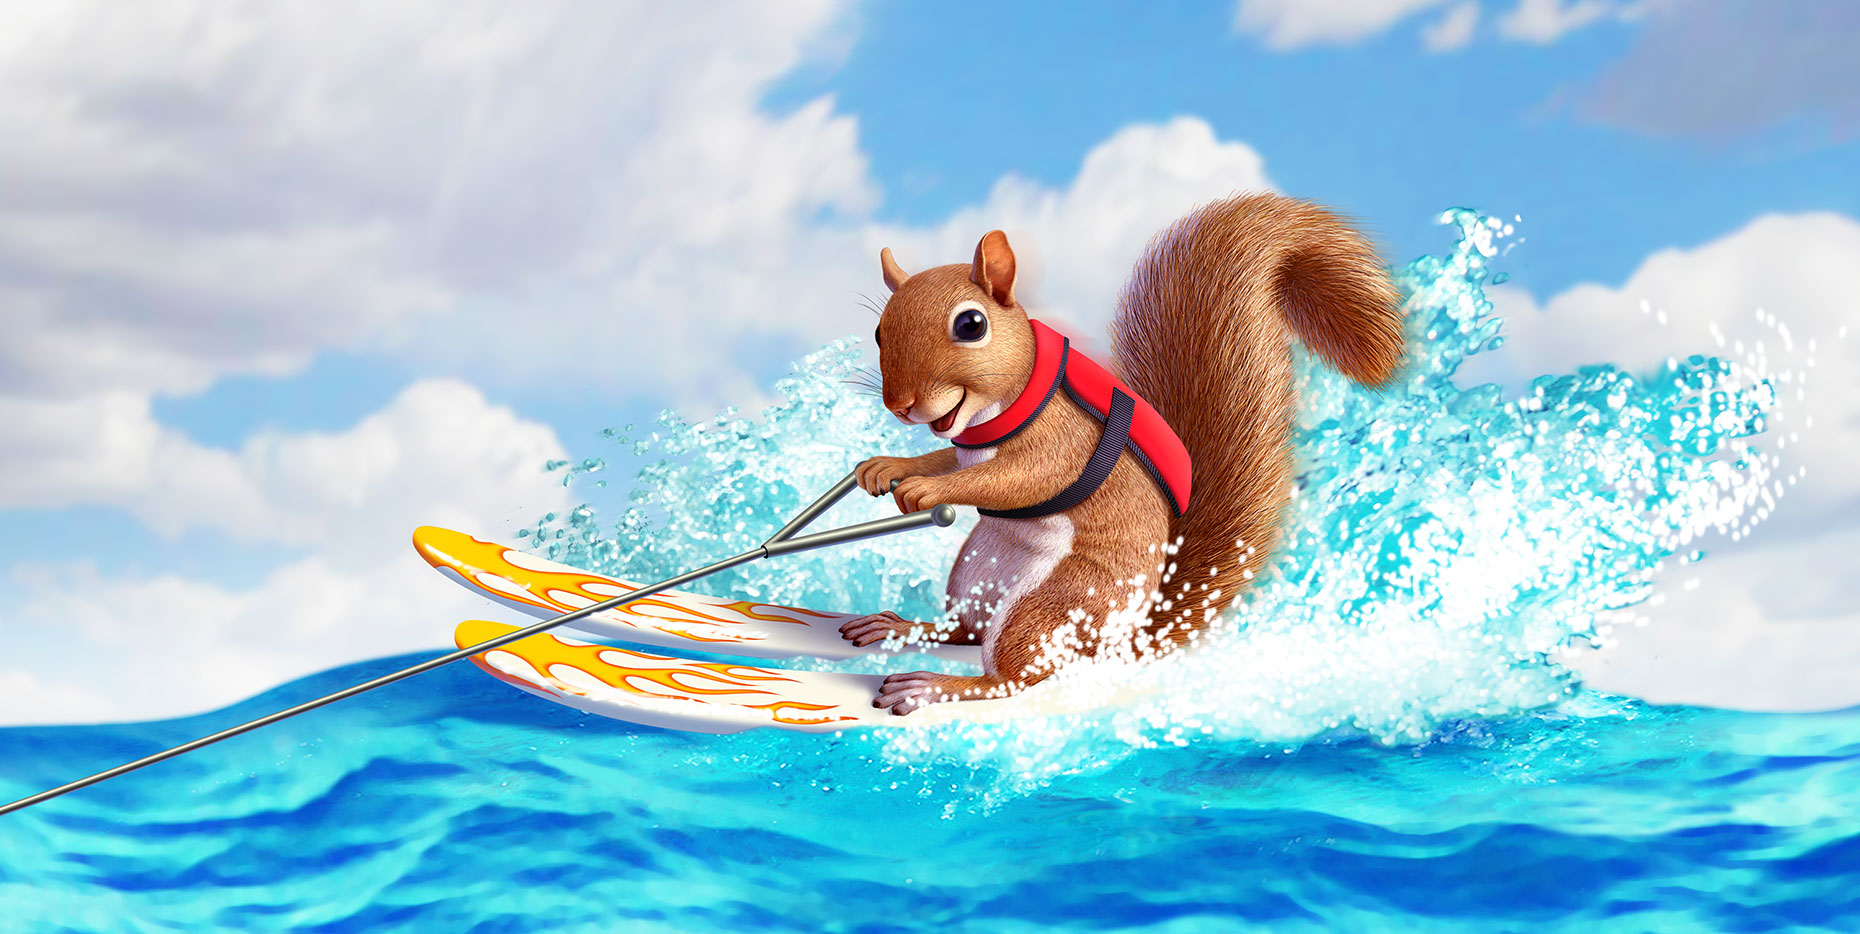 illustration-Animals_Waterskiing squirrel-Jerry LoFaro